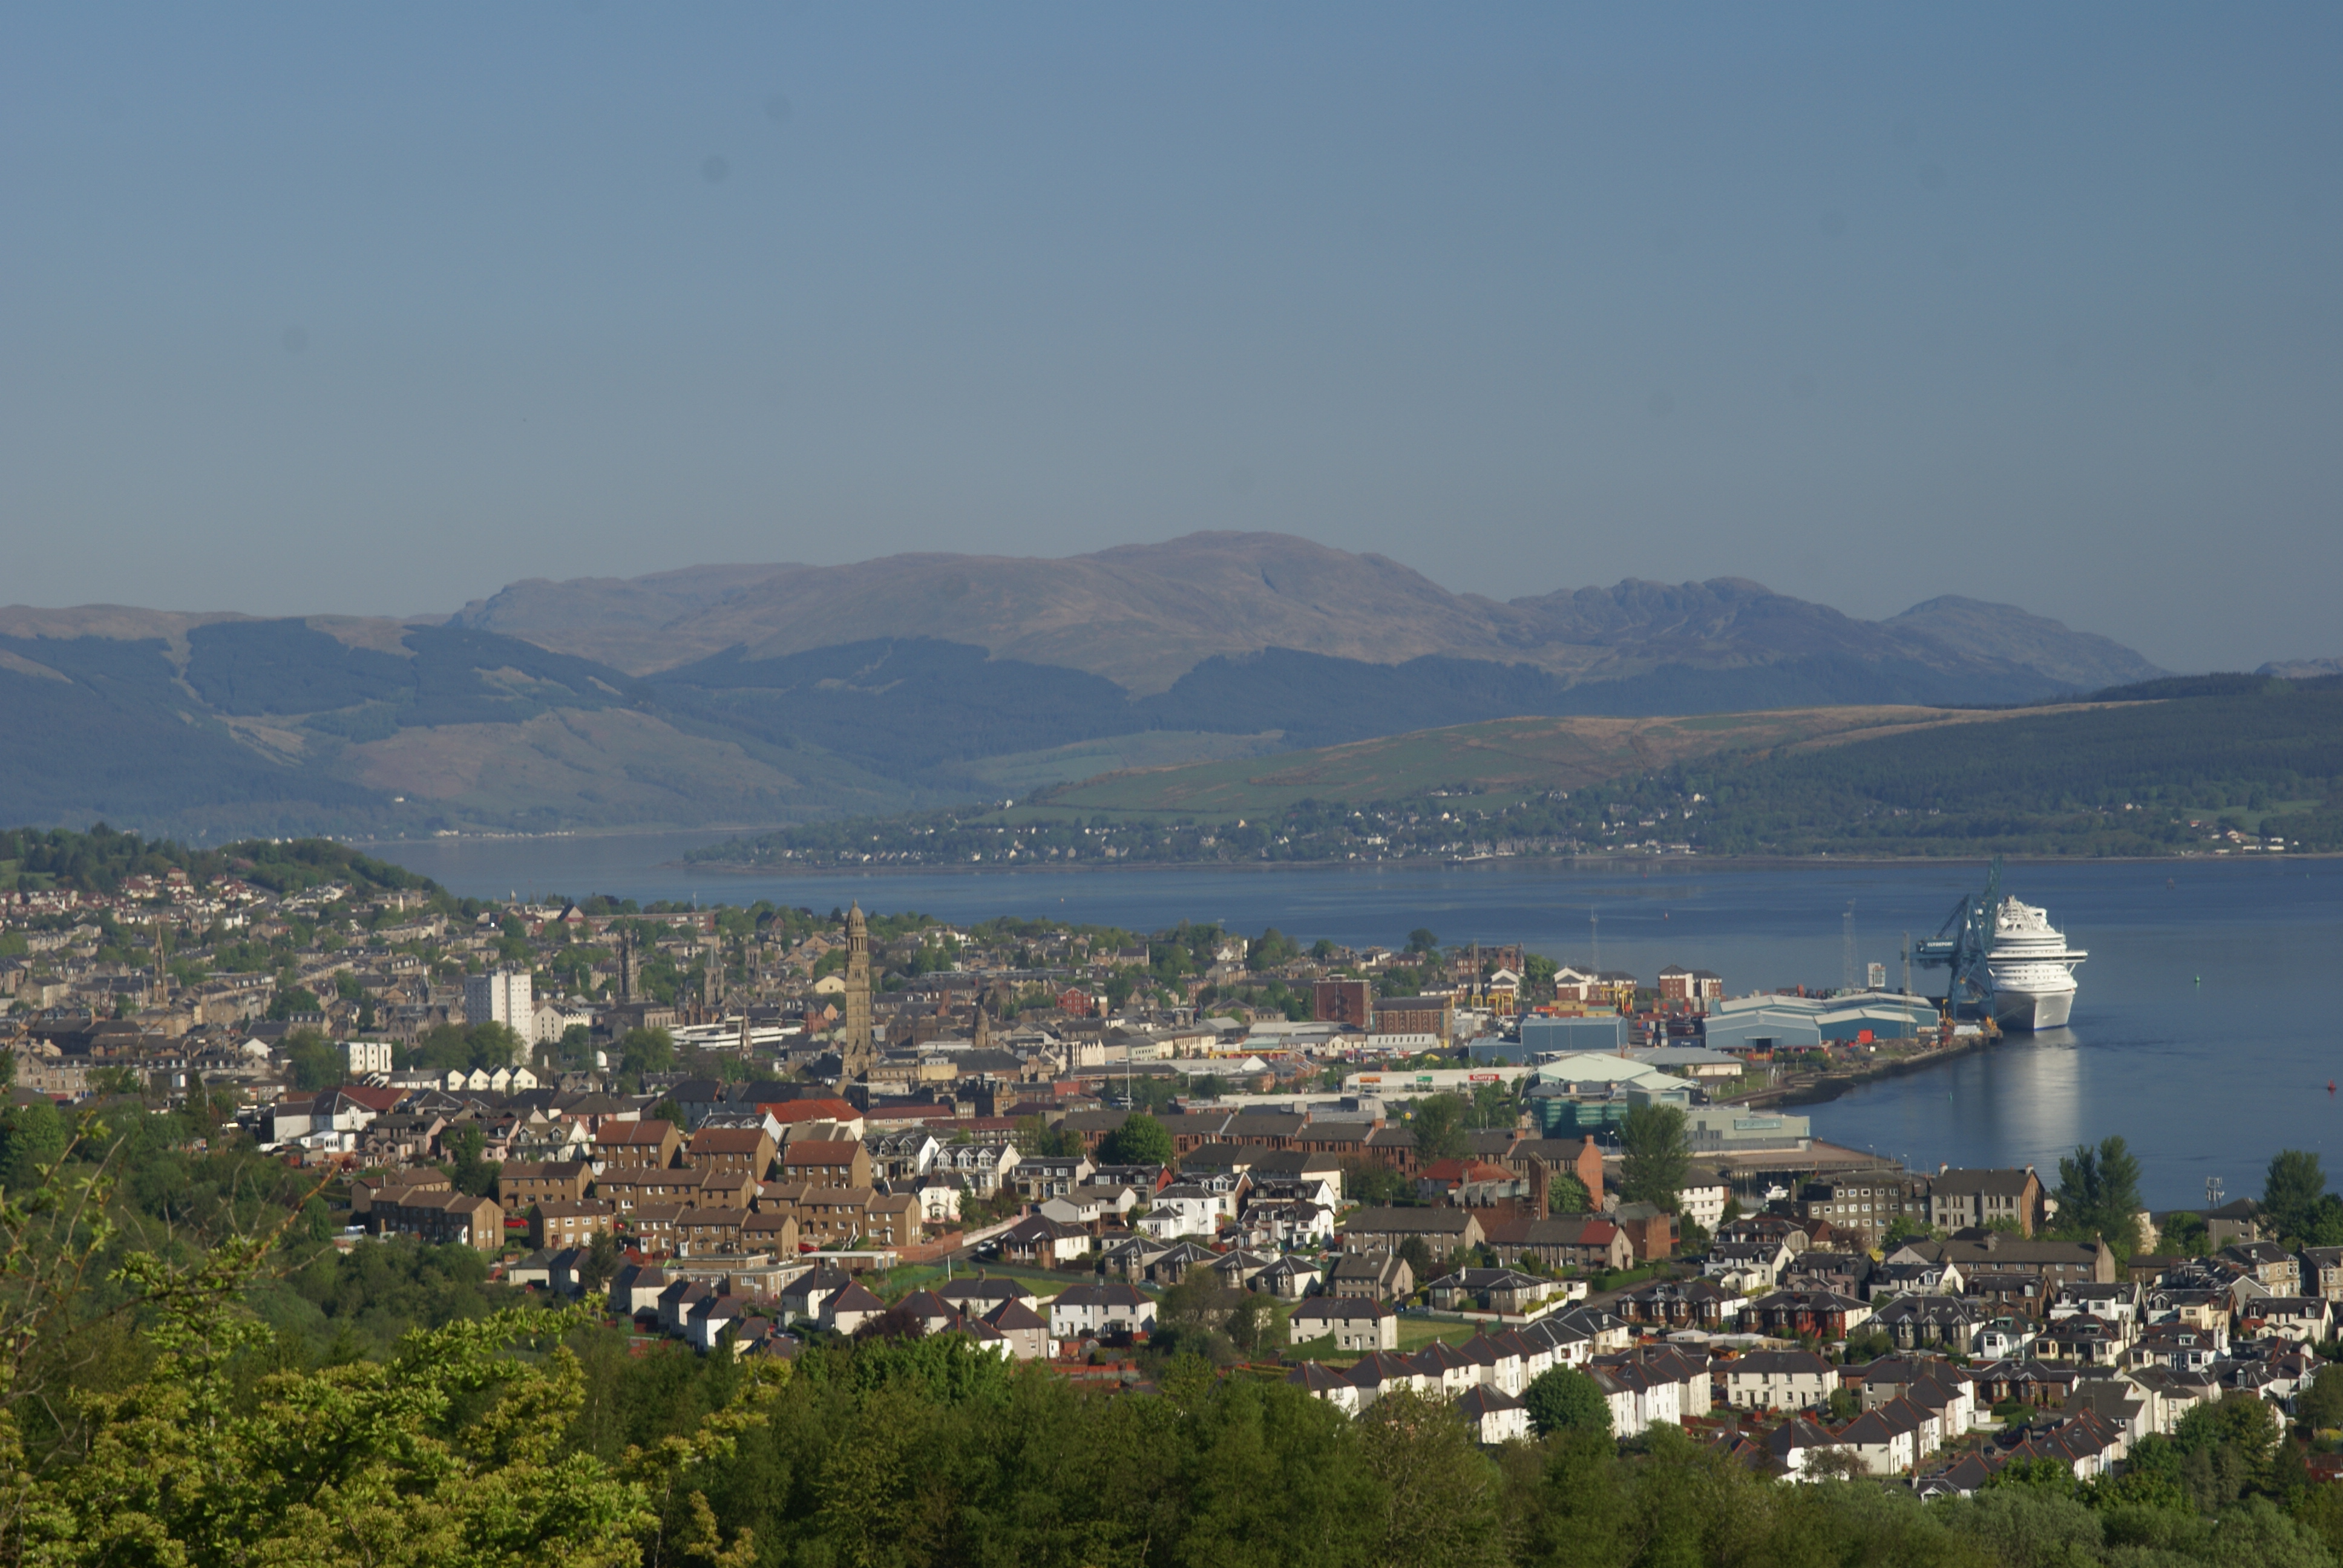 dating greenock scotland Dalmarnock, glasgow or scottish police college, tulliallan £38,538 - £43,323 temporary for up to 24 months 35 hours per week closing date: 9 may 2018.